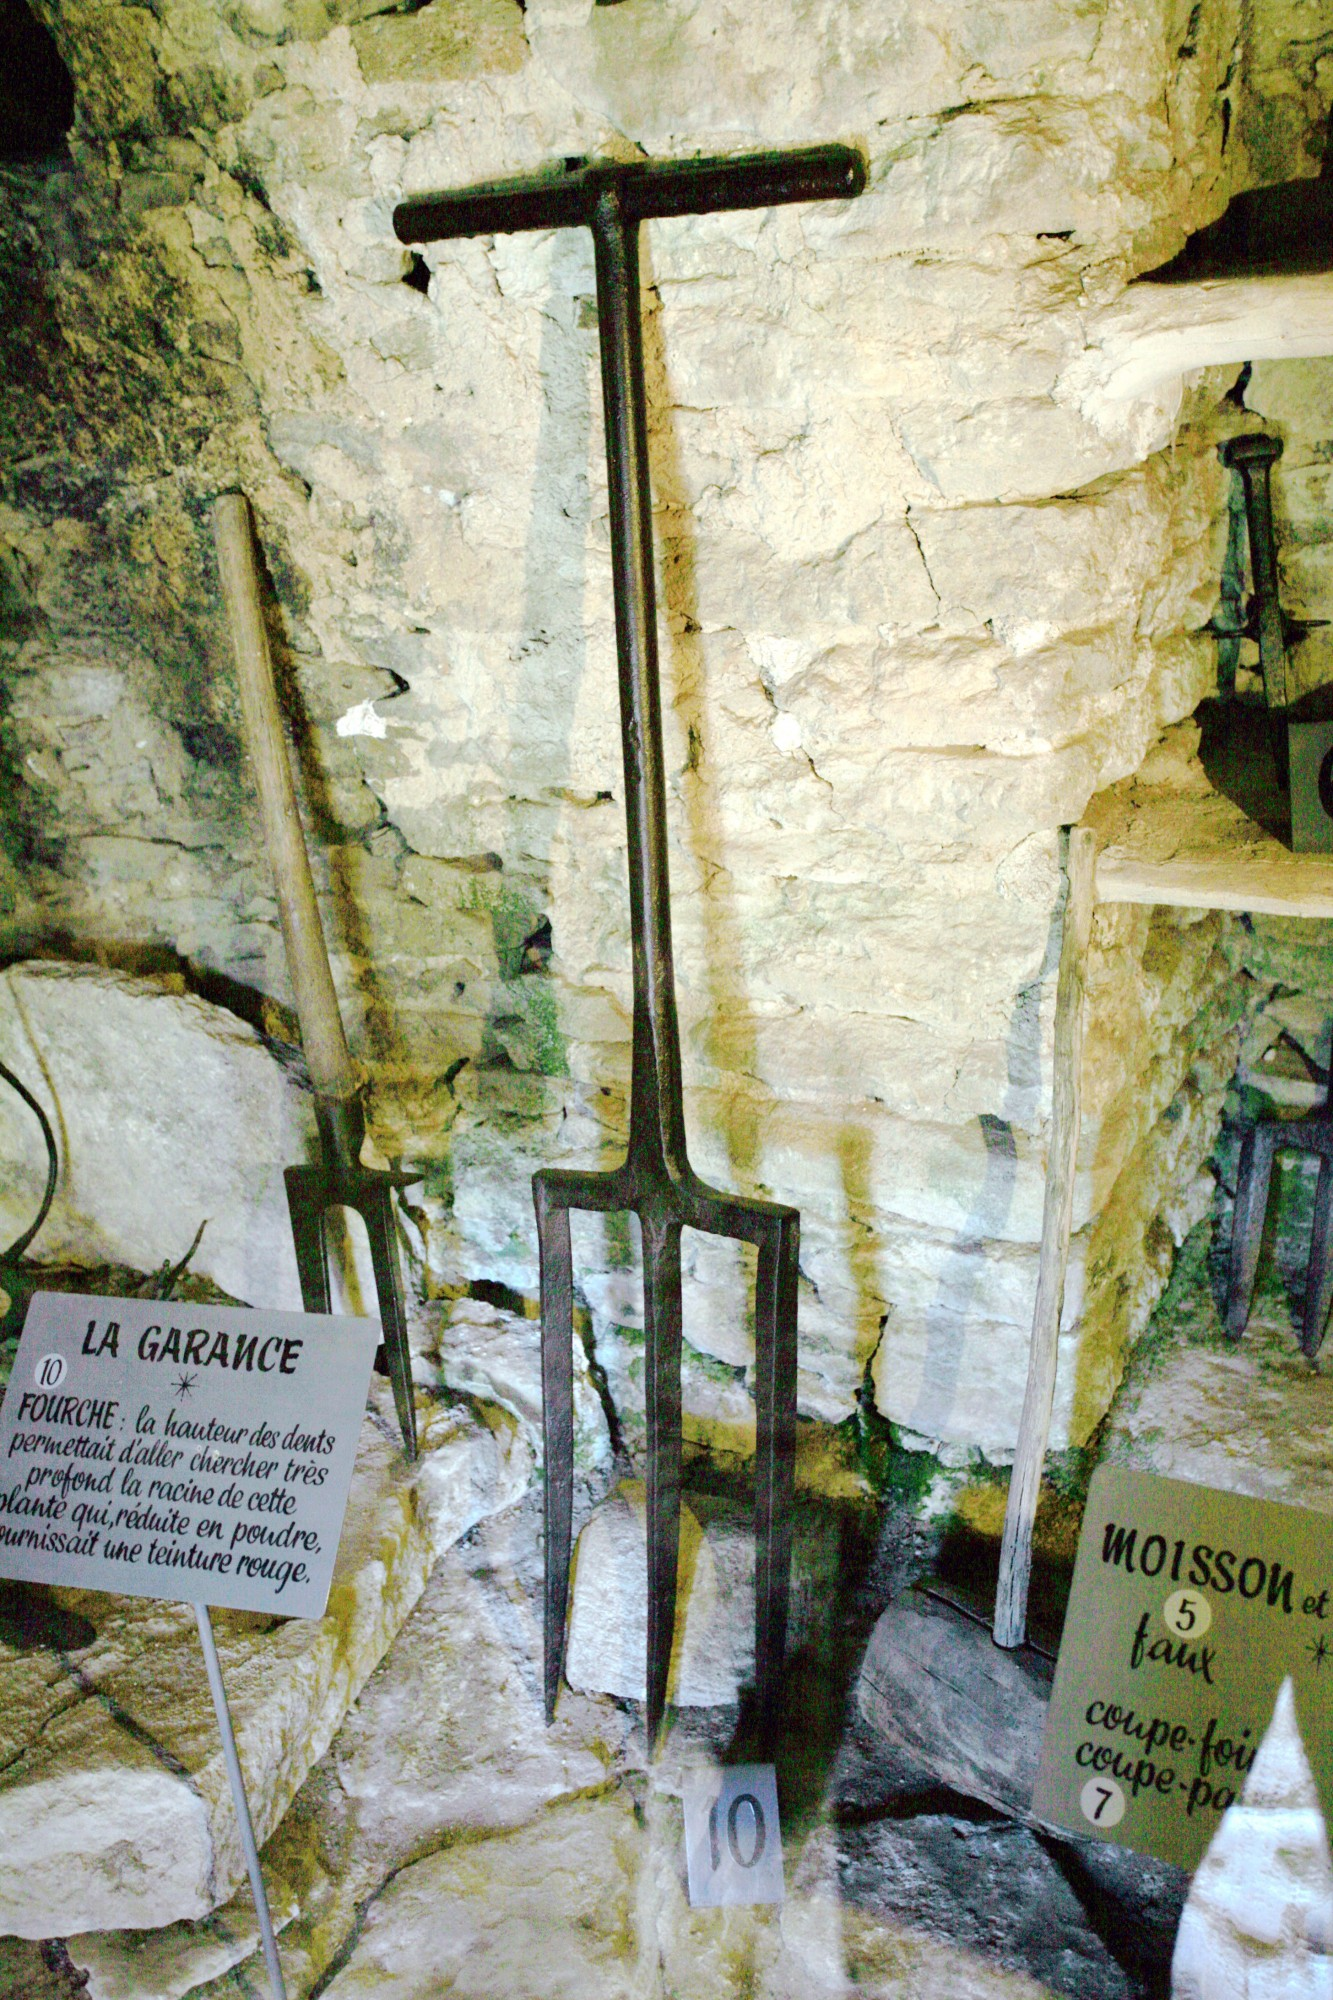 Fourche de Garance, Village de Bories de Gordes